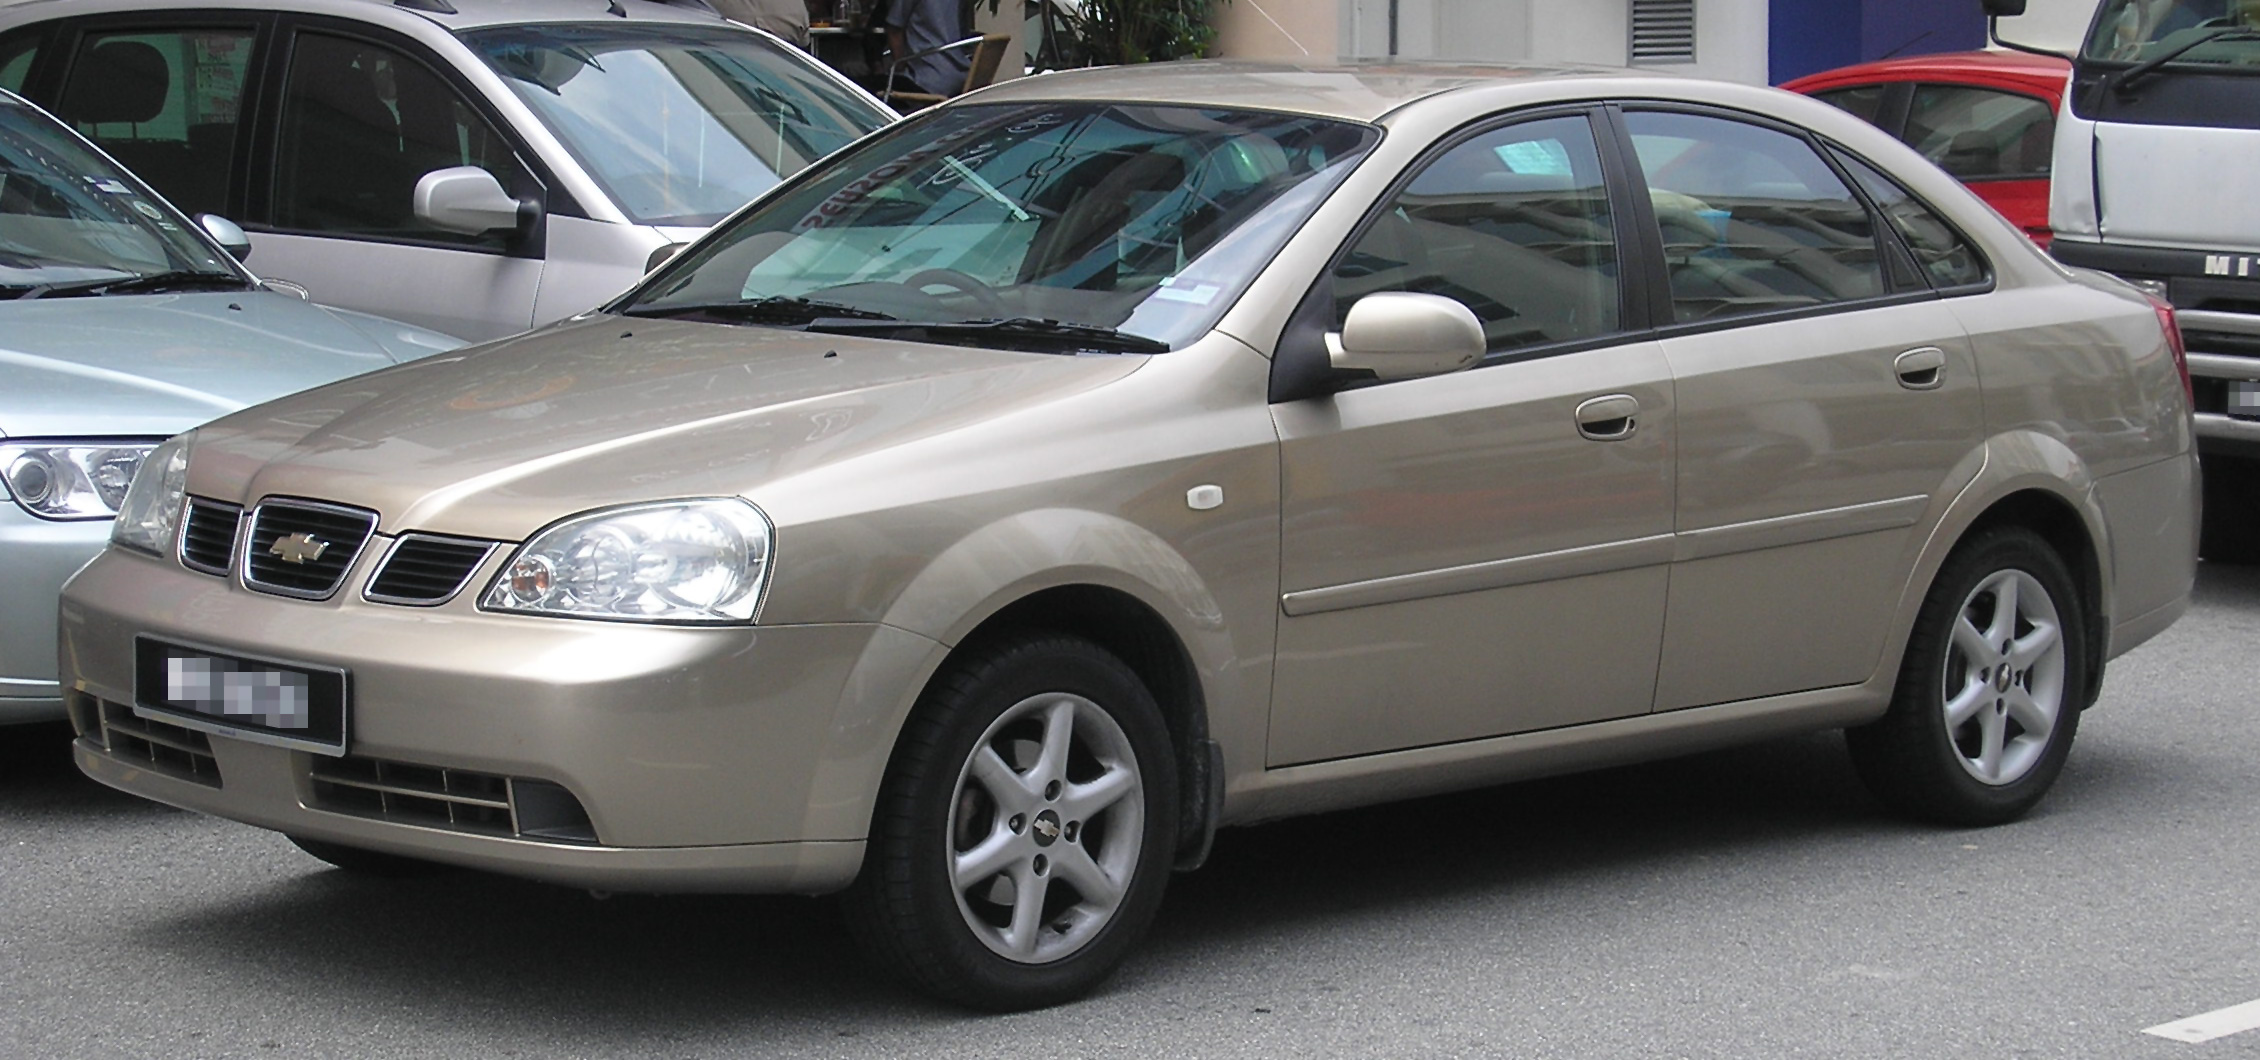 Description Chevrolet Optra (first generation) (front), Serdang.jpg